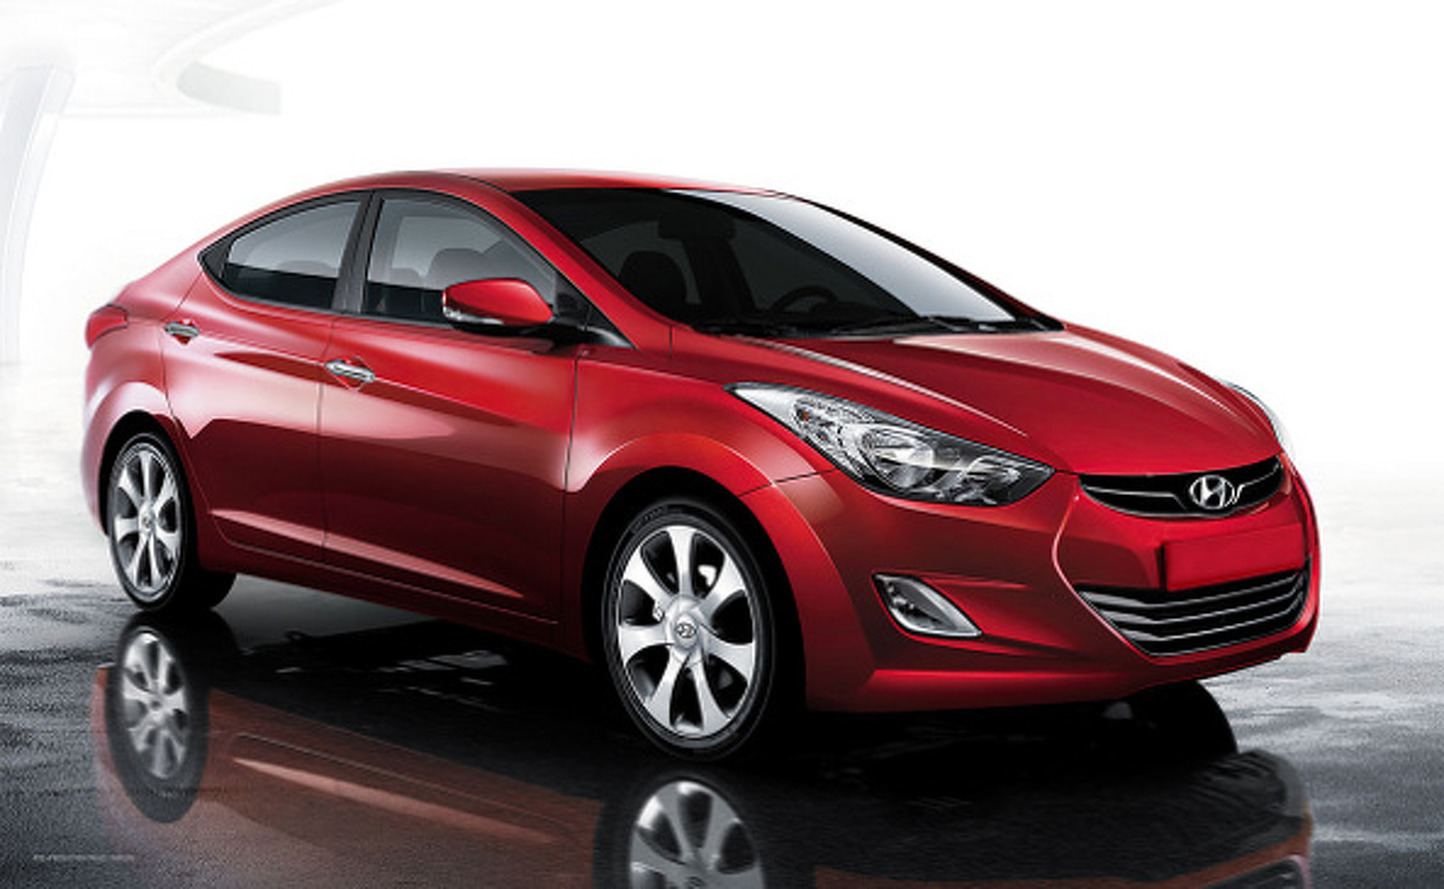 Hyundai and Kia MPG Scandal: Most Overblown of 2012